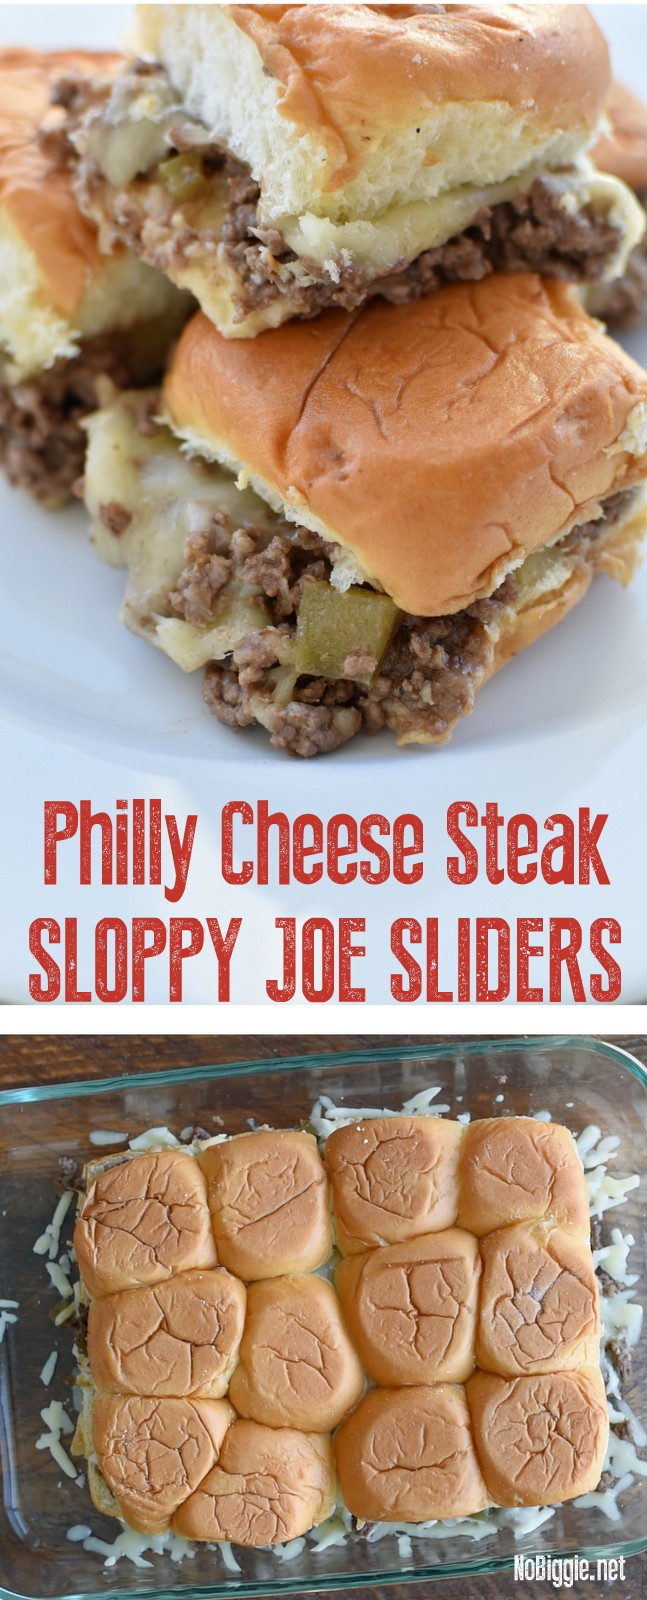 Philly Cheese Steak Sloppy Joe Sliders - a great way to feed a crowd. #phillycheesesteak #sloppyjoeslider #sloppyjoe #crowdpleasers #easymeals